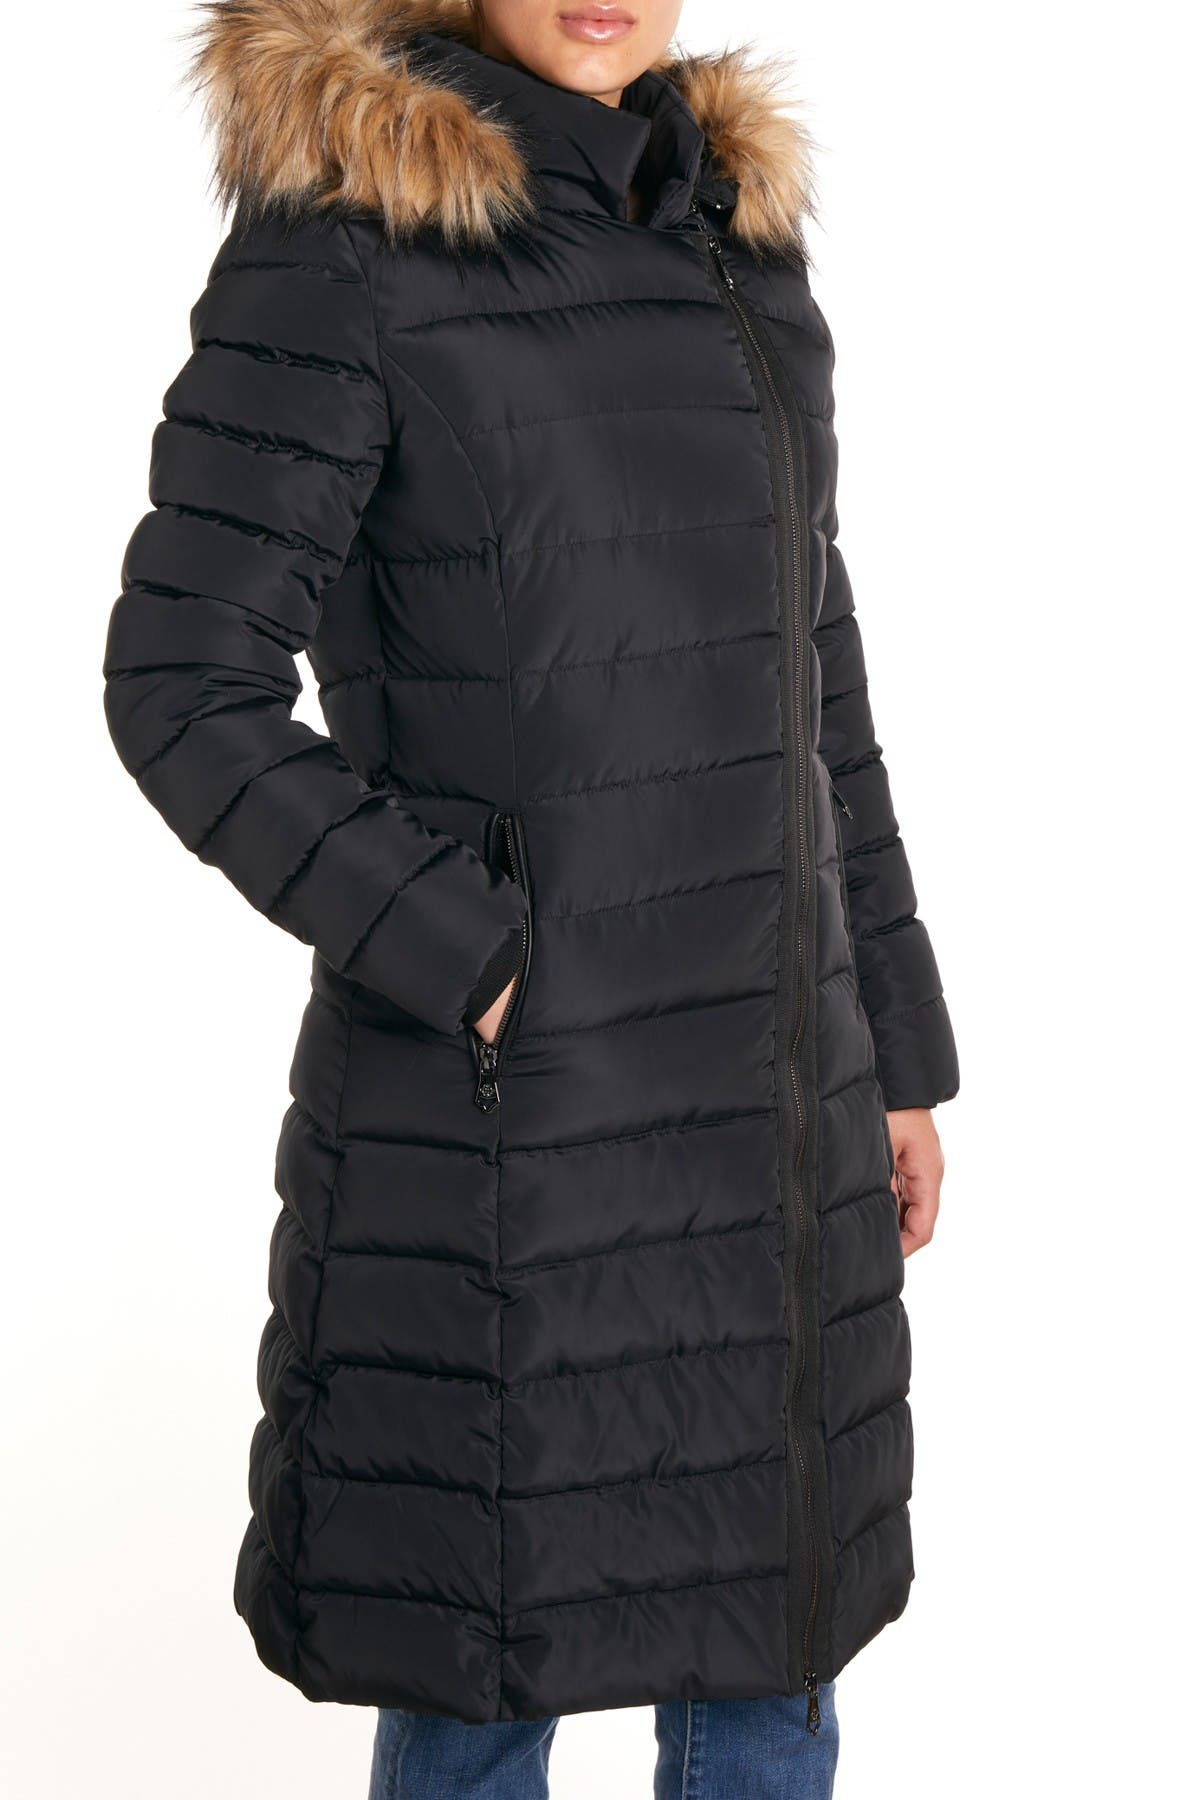 Image of Nanette Lepore Long Faux Fur Hooded Puffer Coat